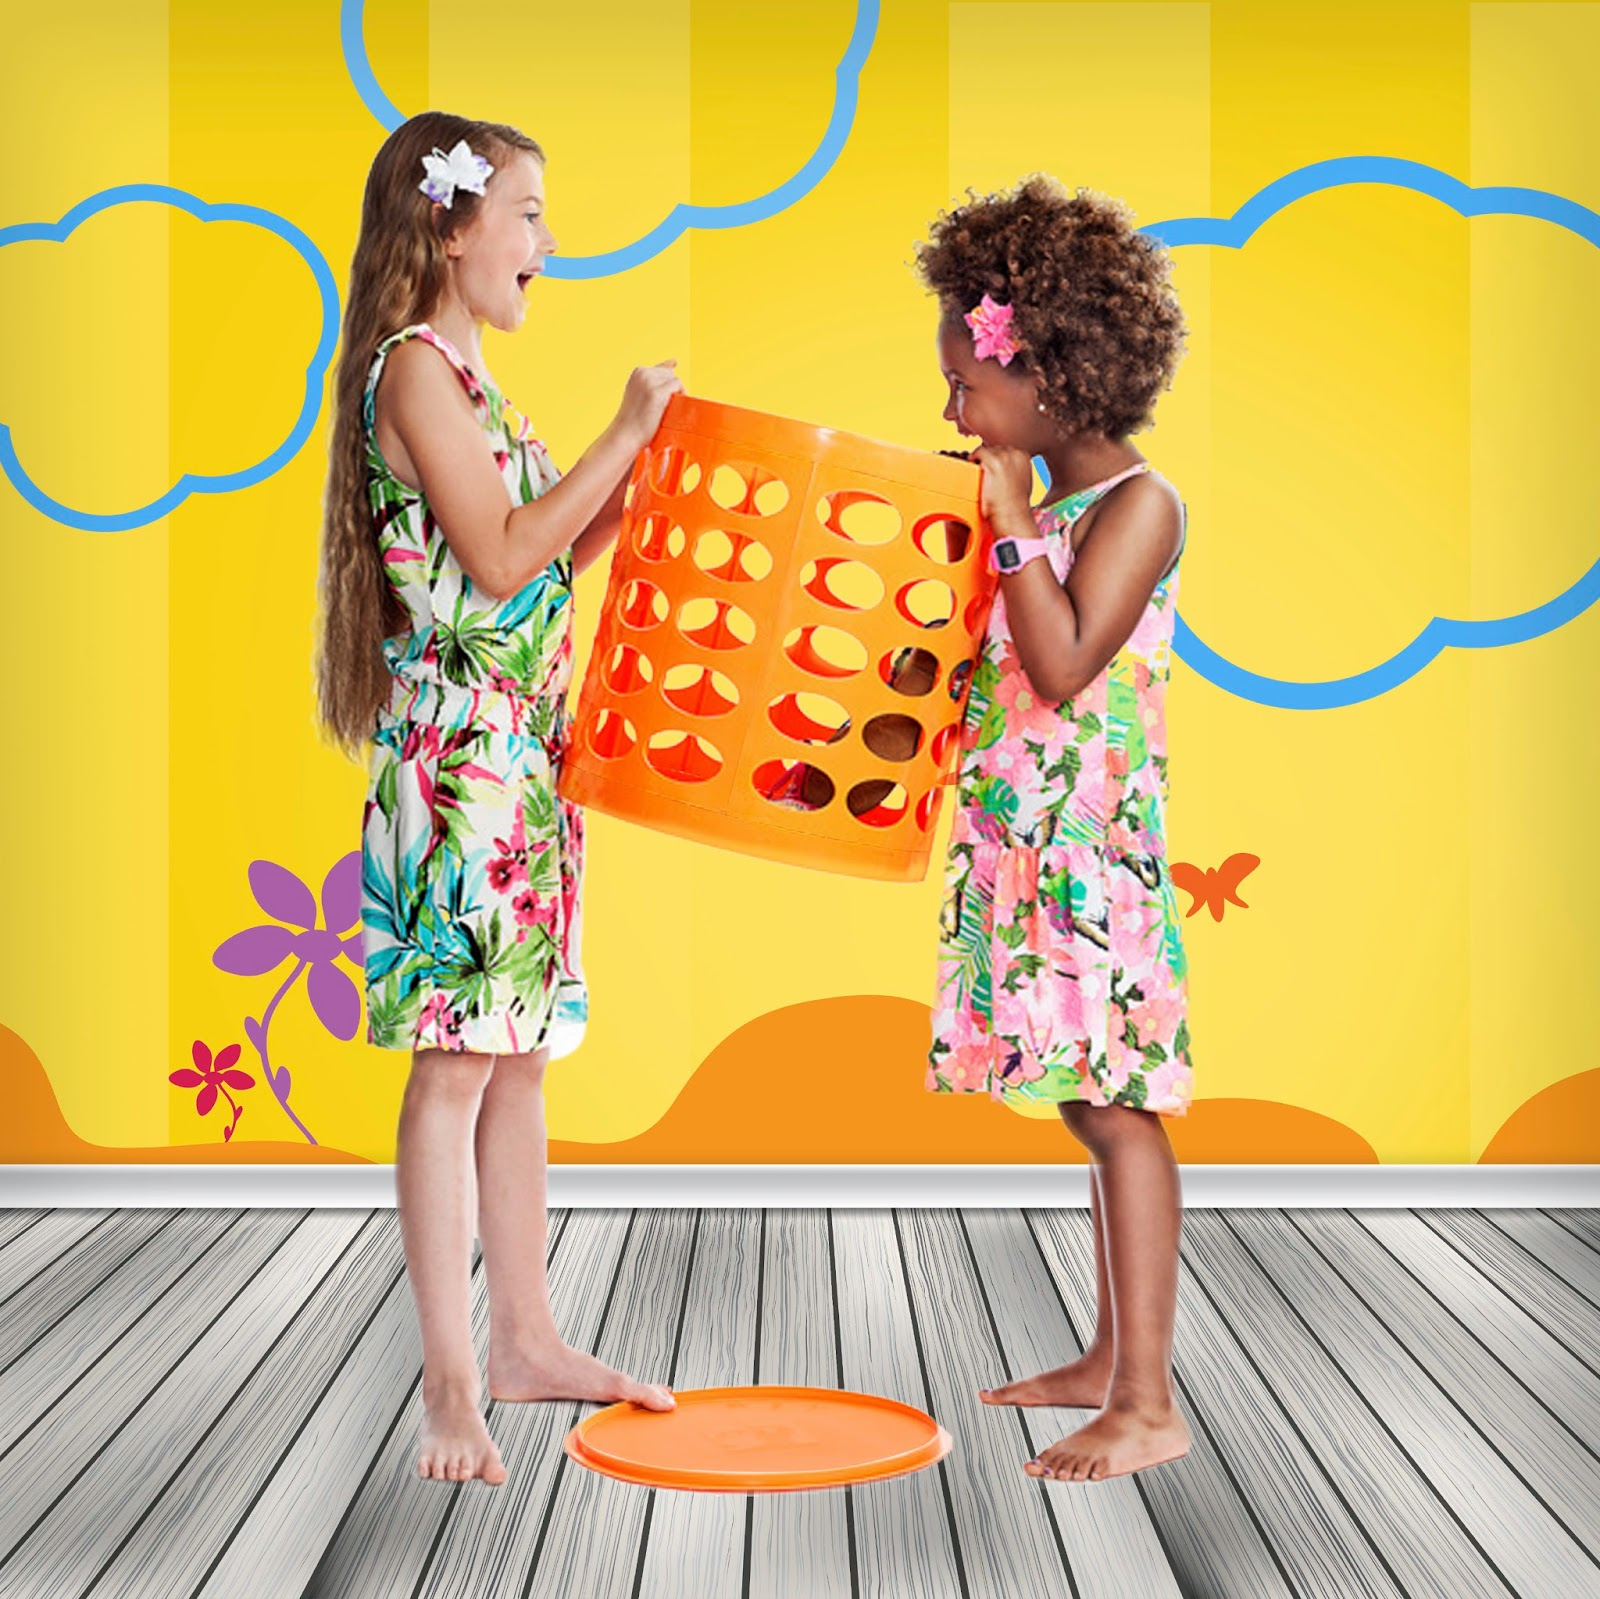 Otto Storage: How to Live in Harmony with Kids' Toys